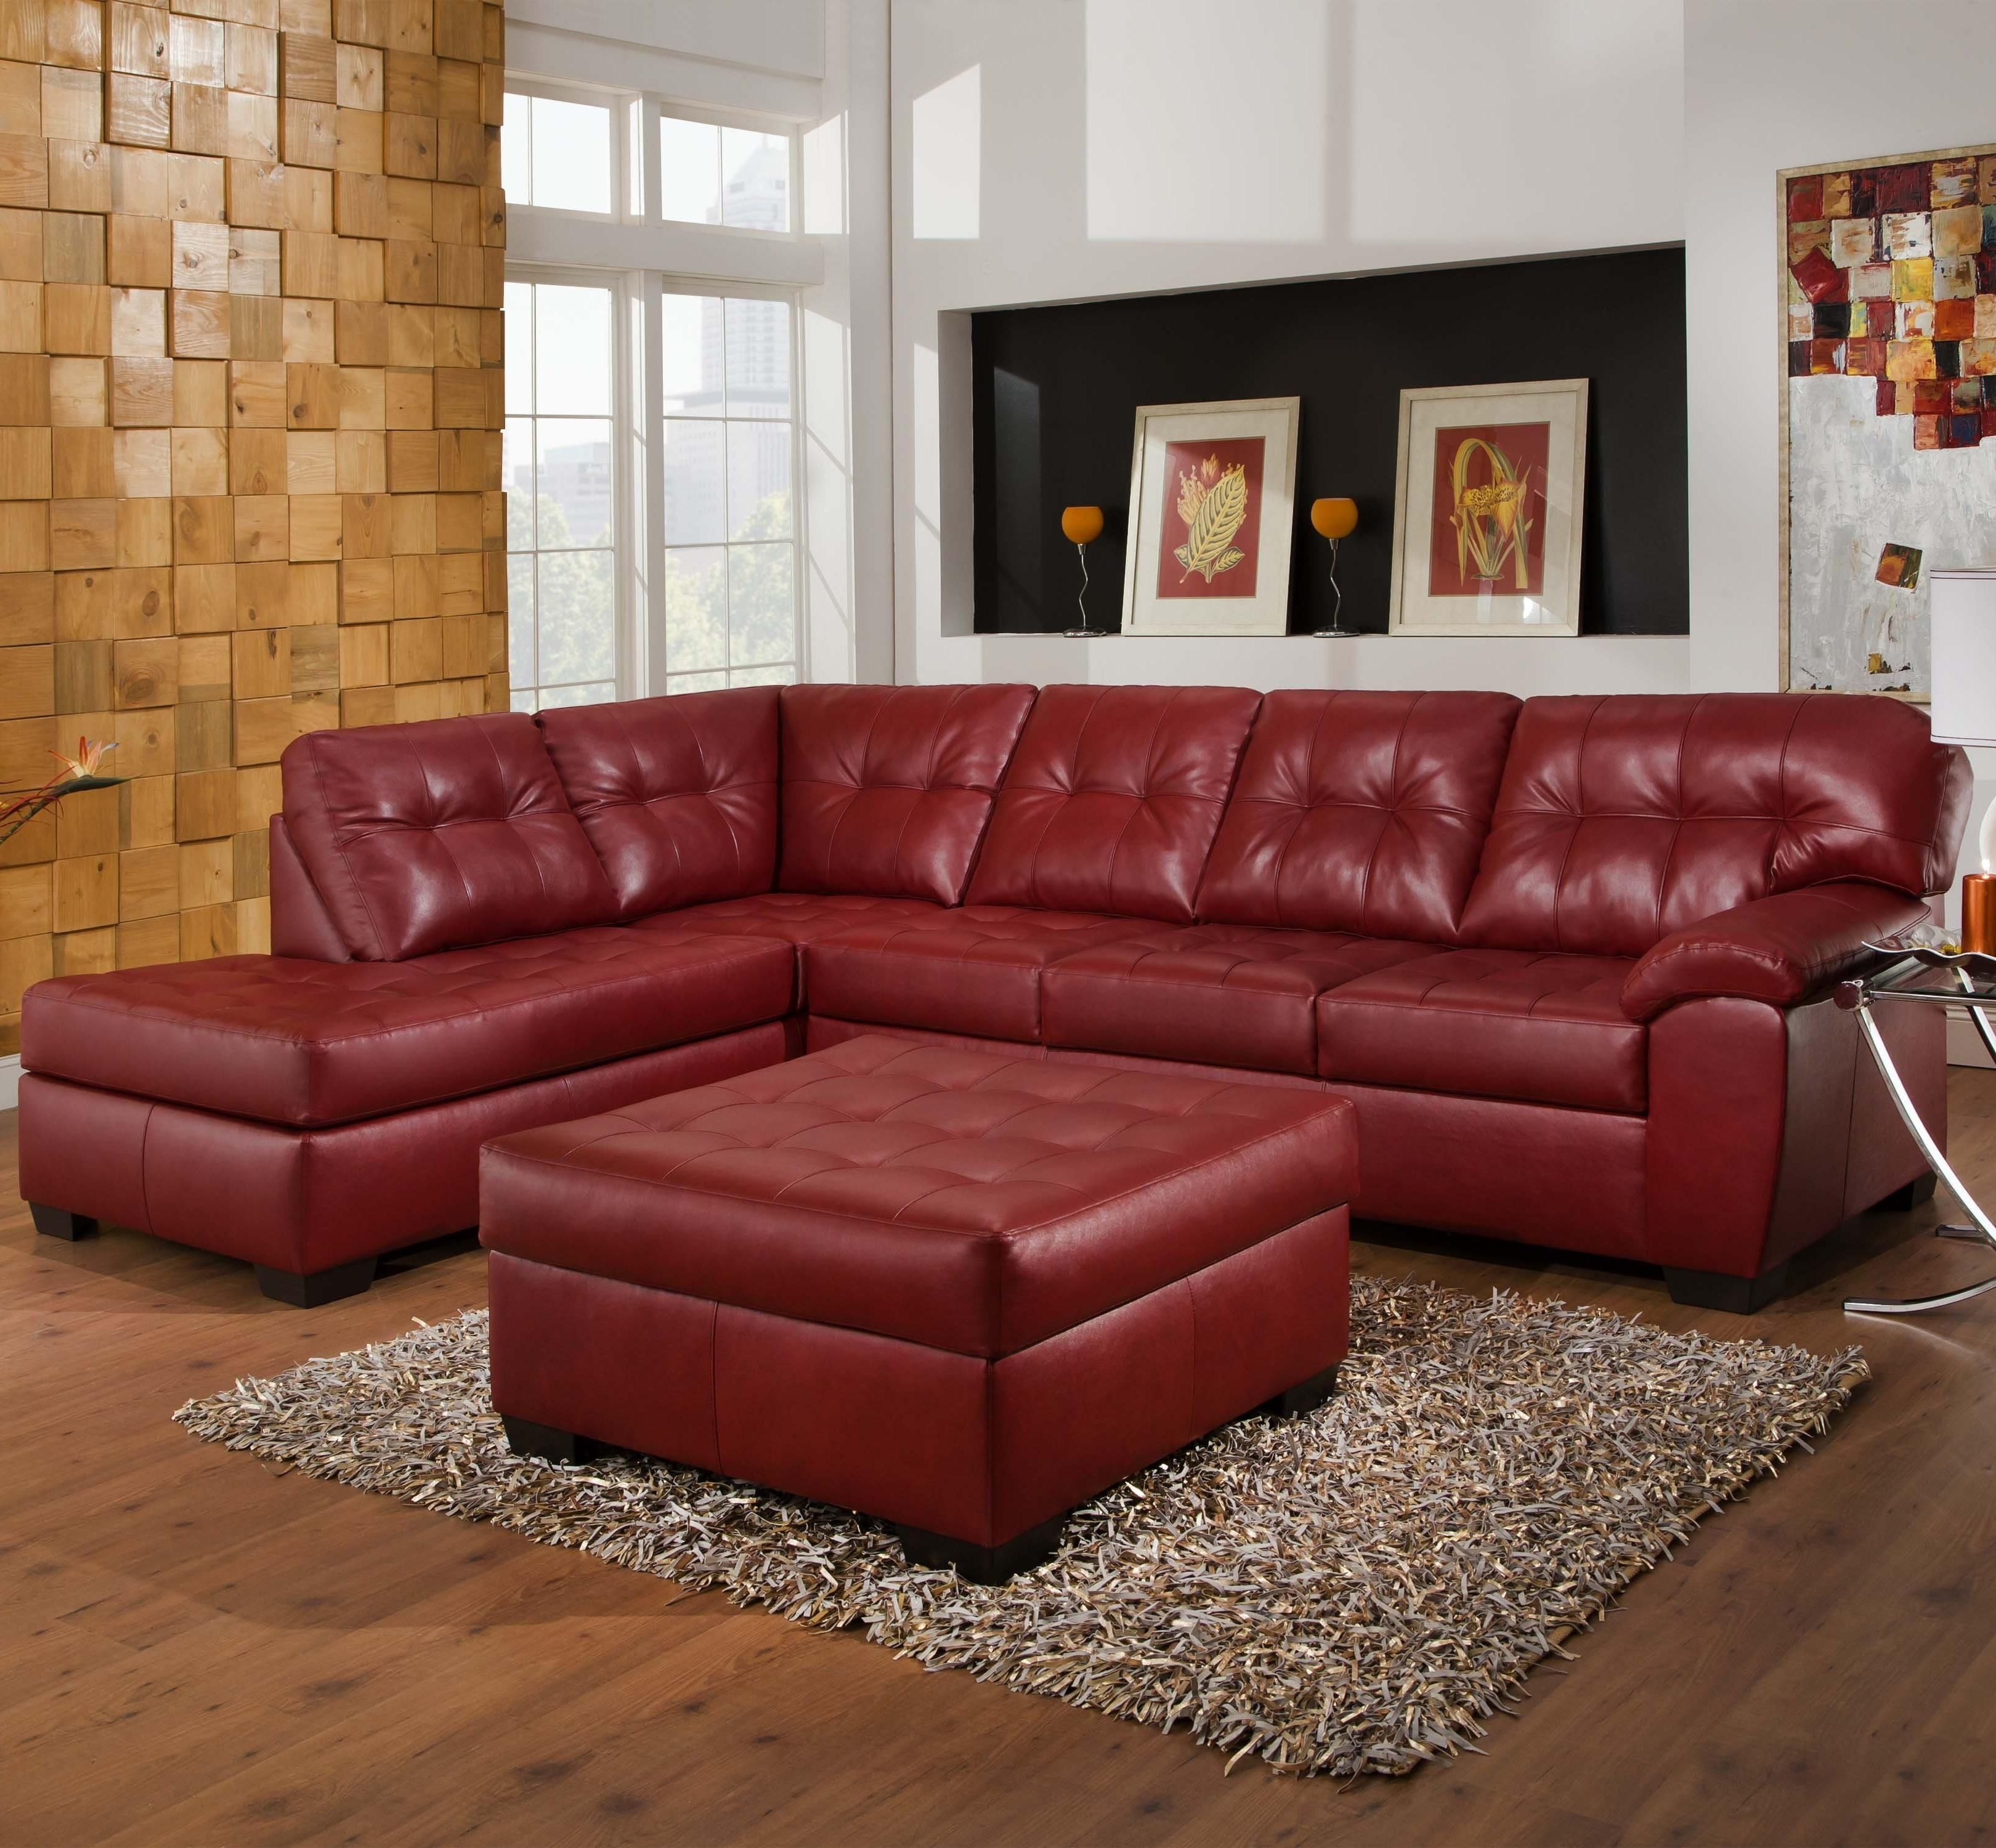 Best And Newest Knoxville Tn Sectional Sofas For 9569 2 Piece Sectional With Tufted Seats & Backsimmons (View 13 of 15)